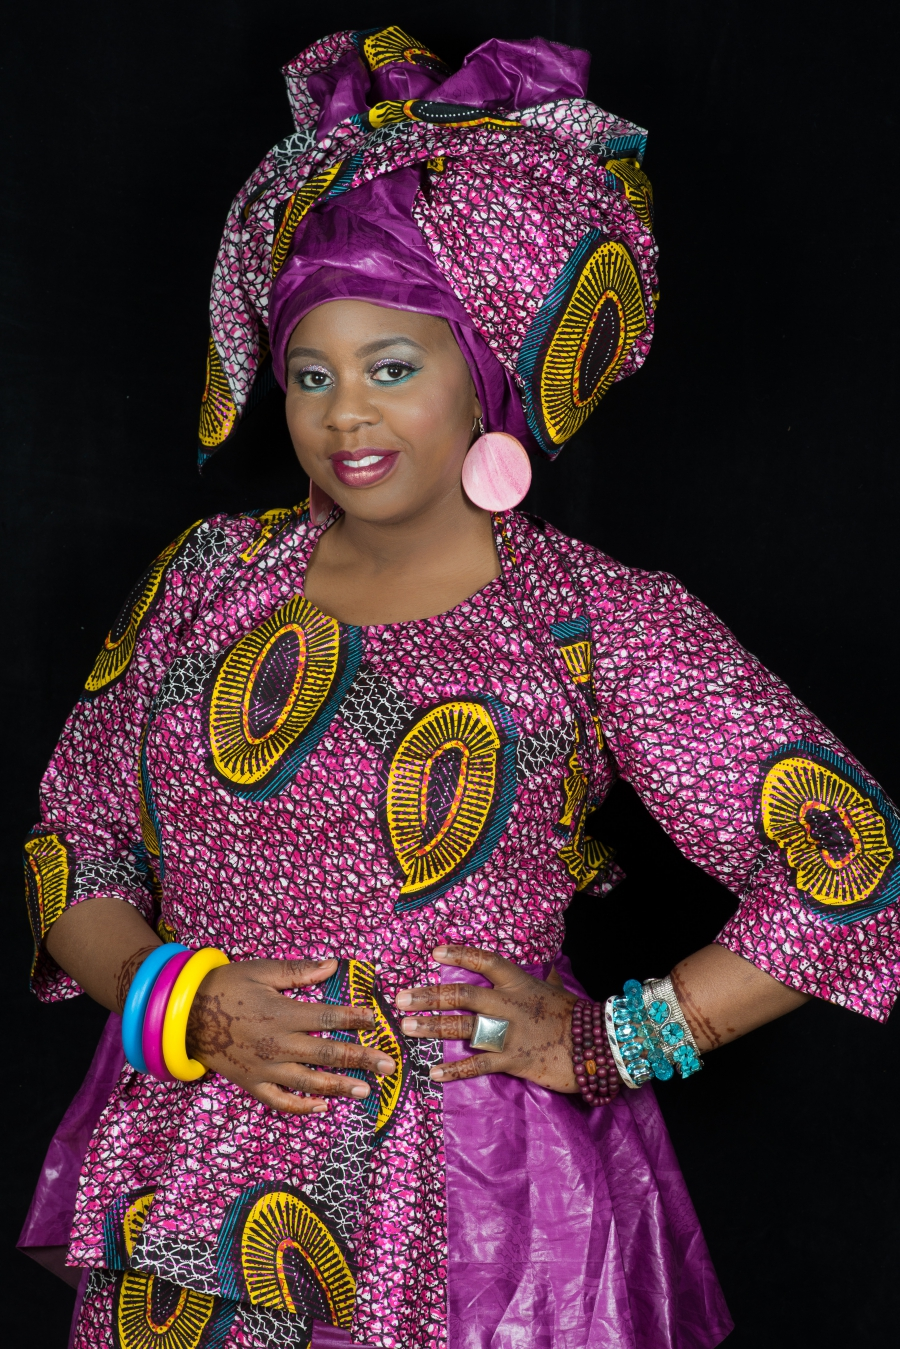 A woman is wearing a colorful pink dress and matching bright headwrap.